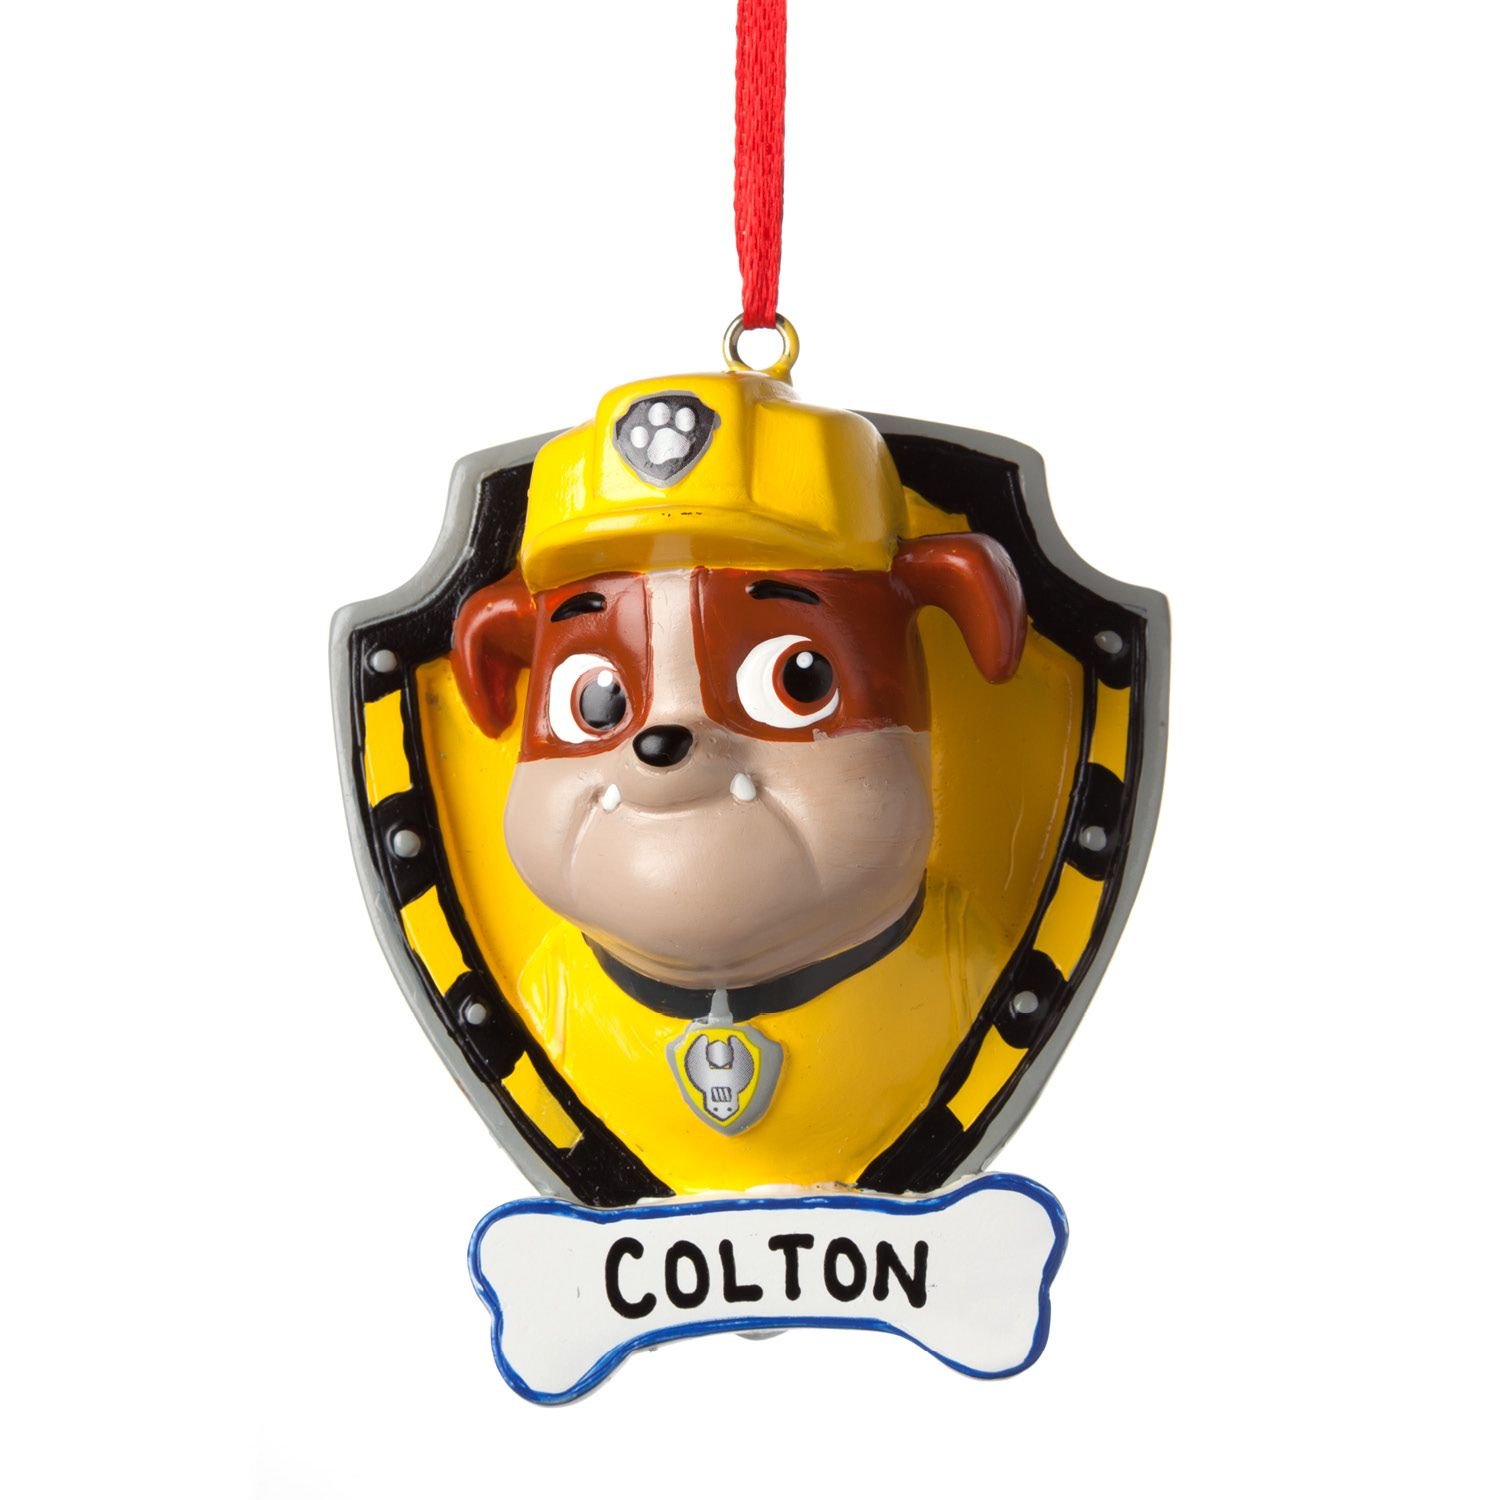 Personalized ornaments for kids - Add Some Personalized Fun To Your Tree With Our Ornament Featuring Rubble From Paw Patrol